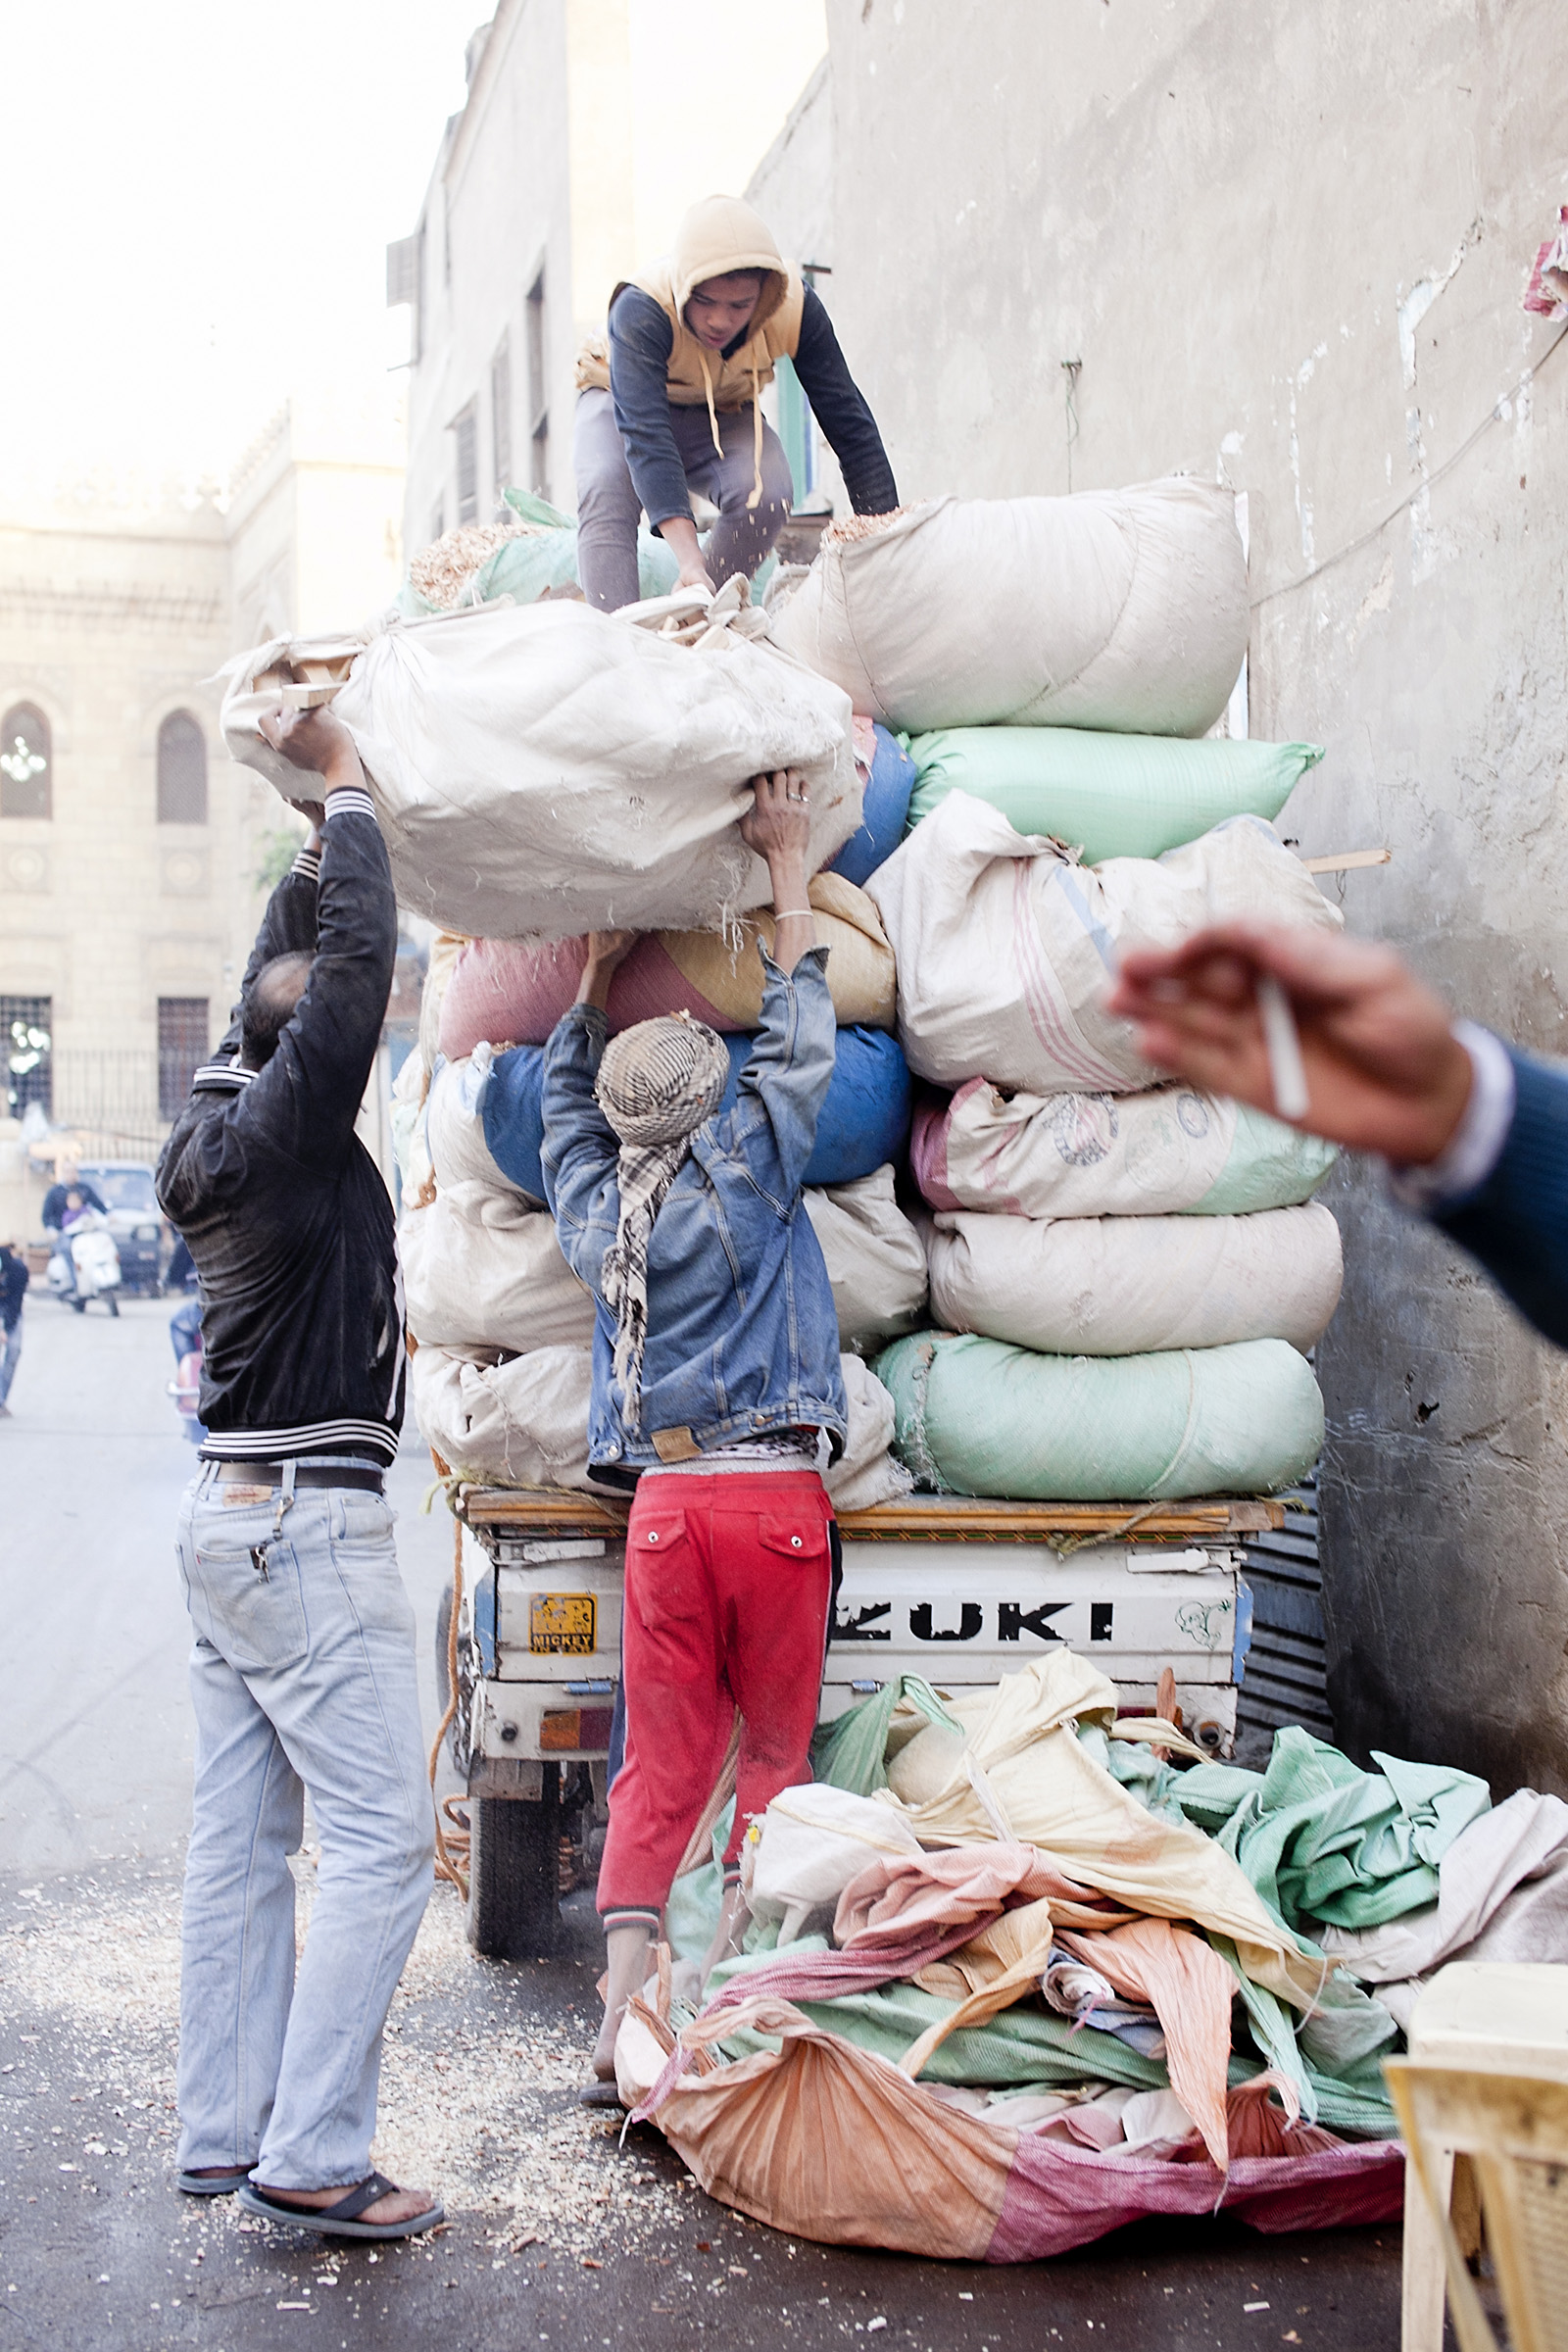 Overloaded trucks like this are a common sight at Cairo's markets.